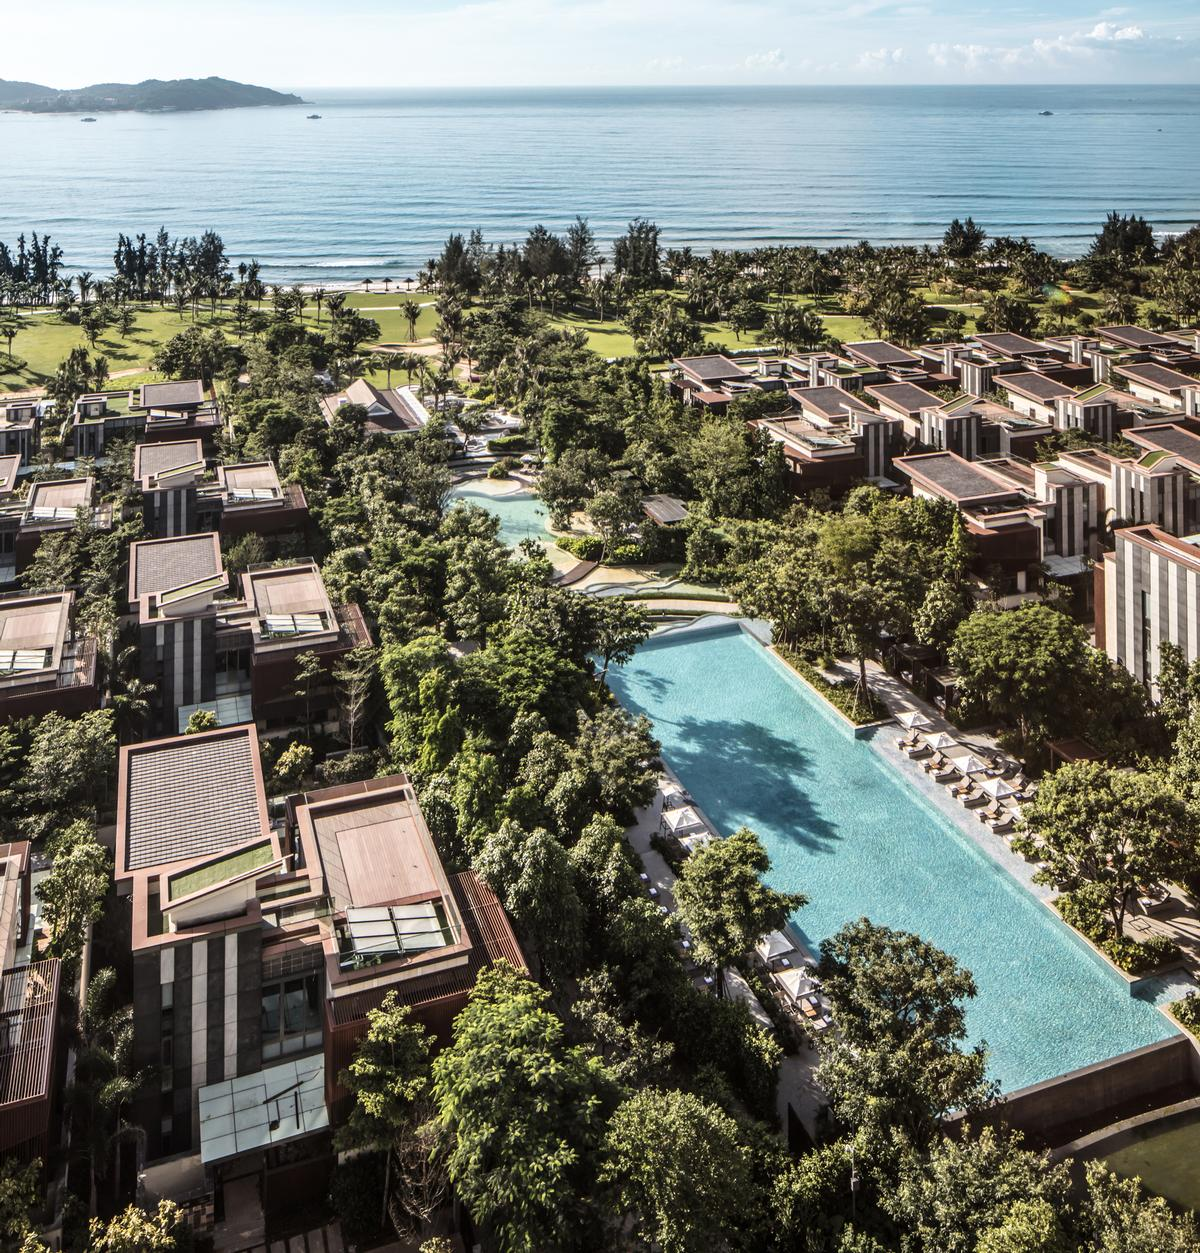 Rosewood Hotels & Resorts' first resort in China has officially opened on Hainan Bay, set within 40 acres of landscaped gardens / Rosewood Hotels and Resorts